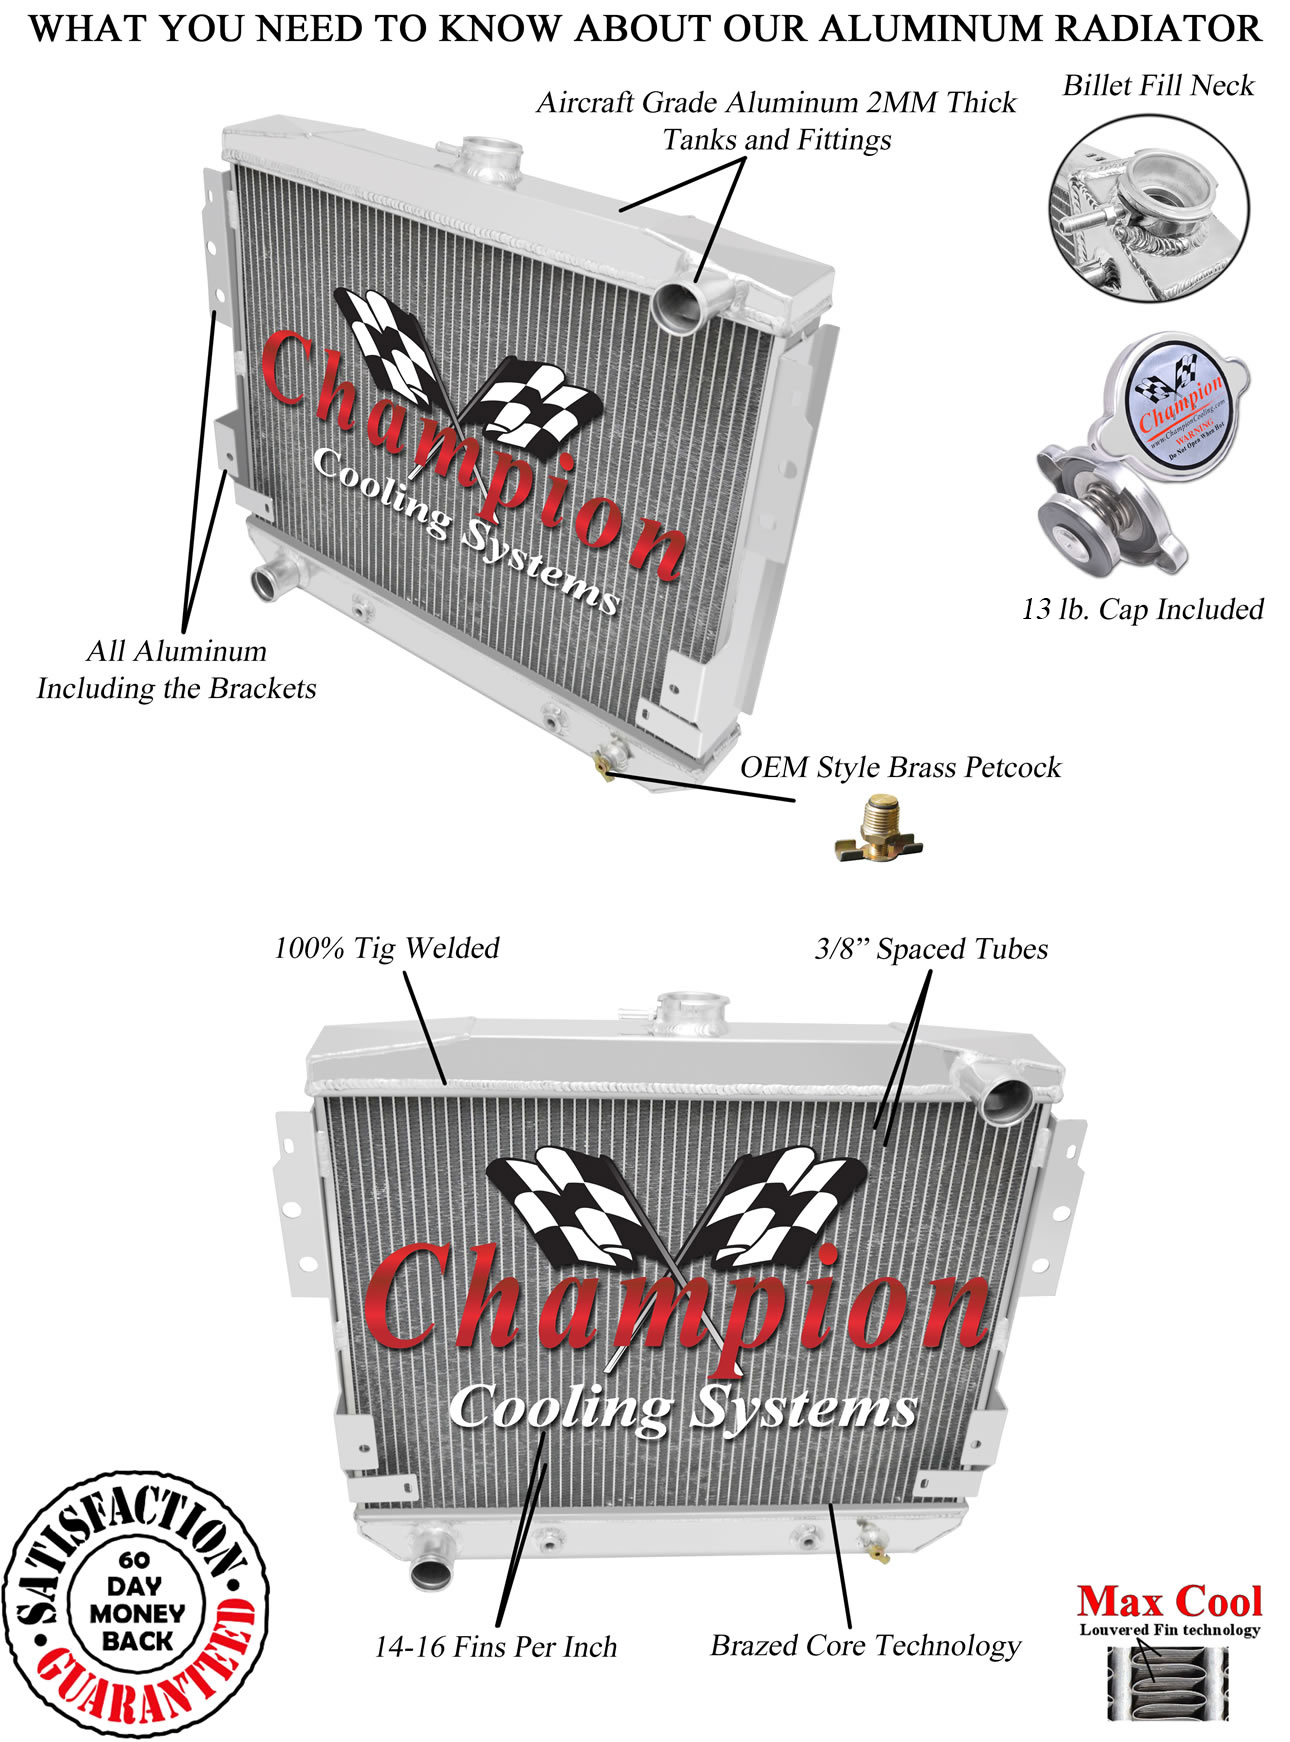 https://www.championcooling.com/photos/Photos%20White/Without%20Fans/514/514_d_w.jpg